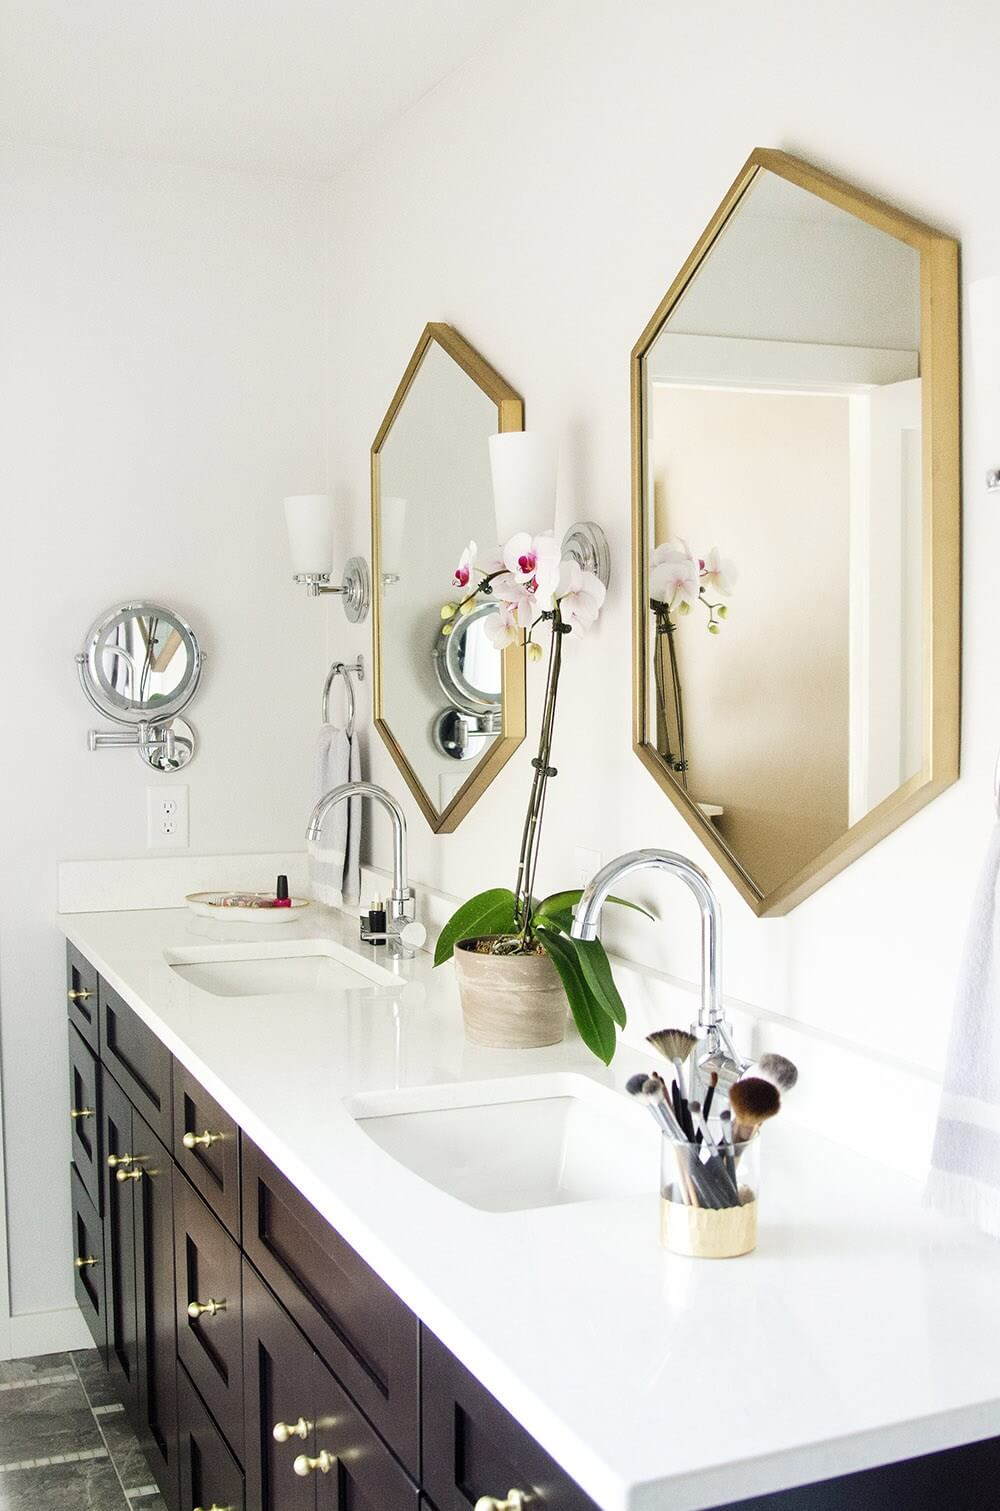 15 Bathrooms With Beautiful Statement Mirrors